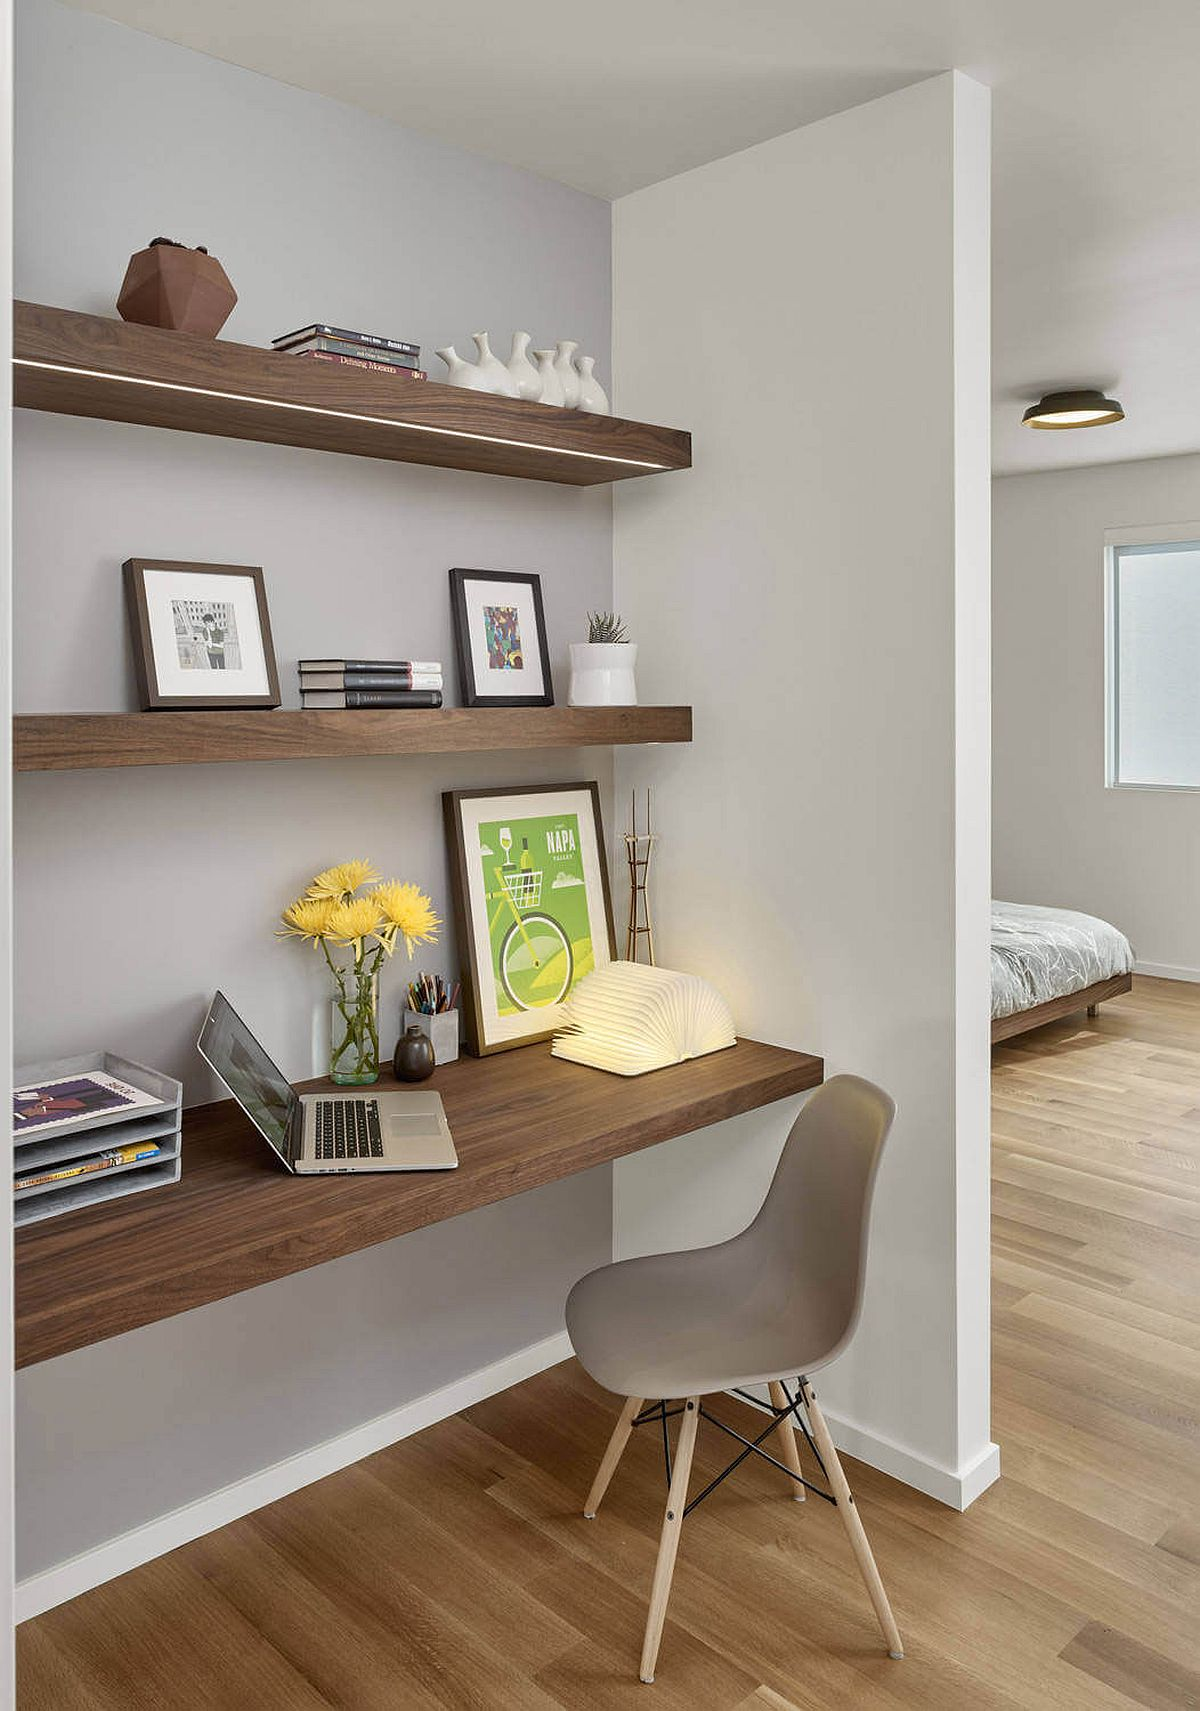 Small-workspace-in-the-bedroom-corner-with-floating-wooden-shelves